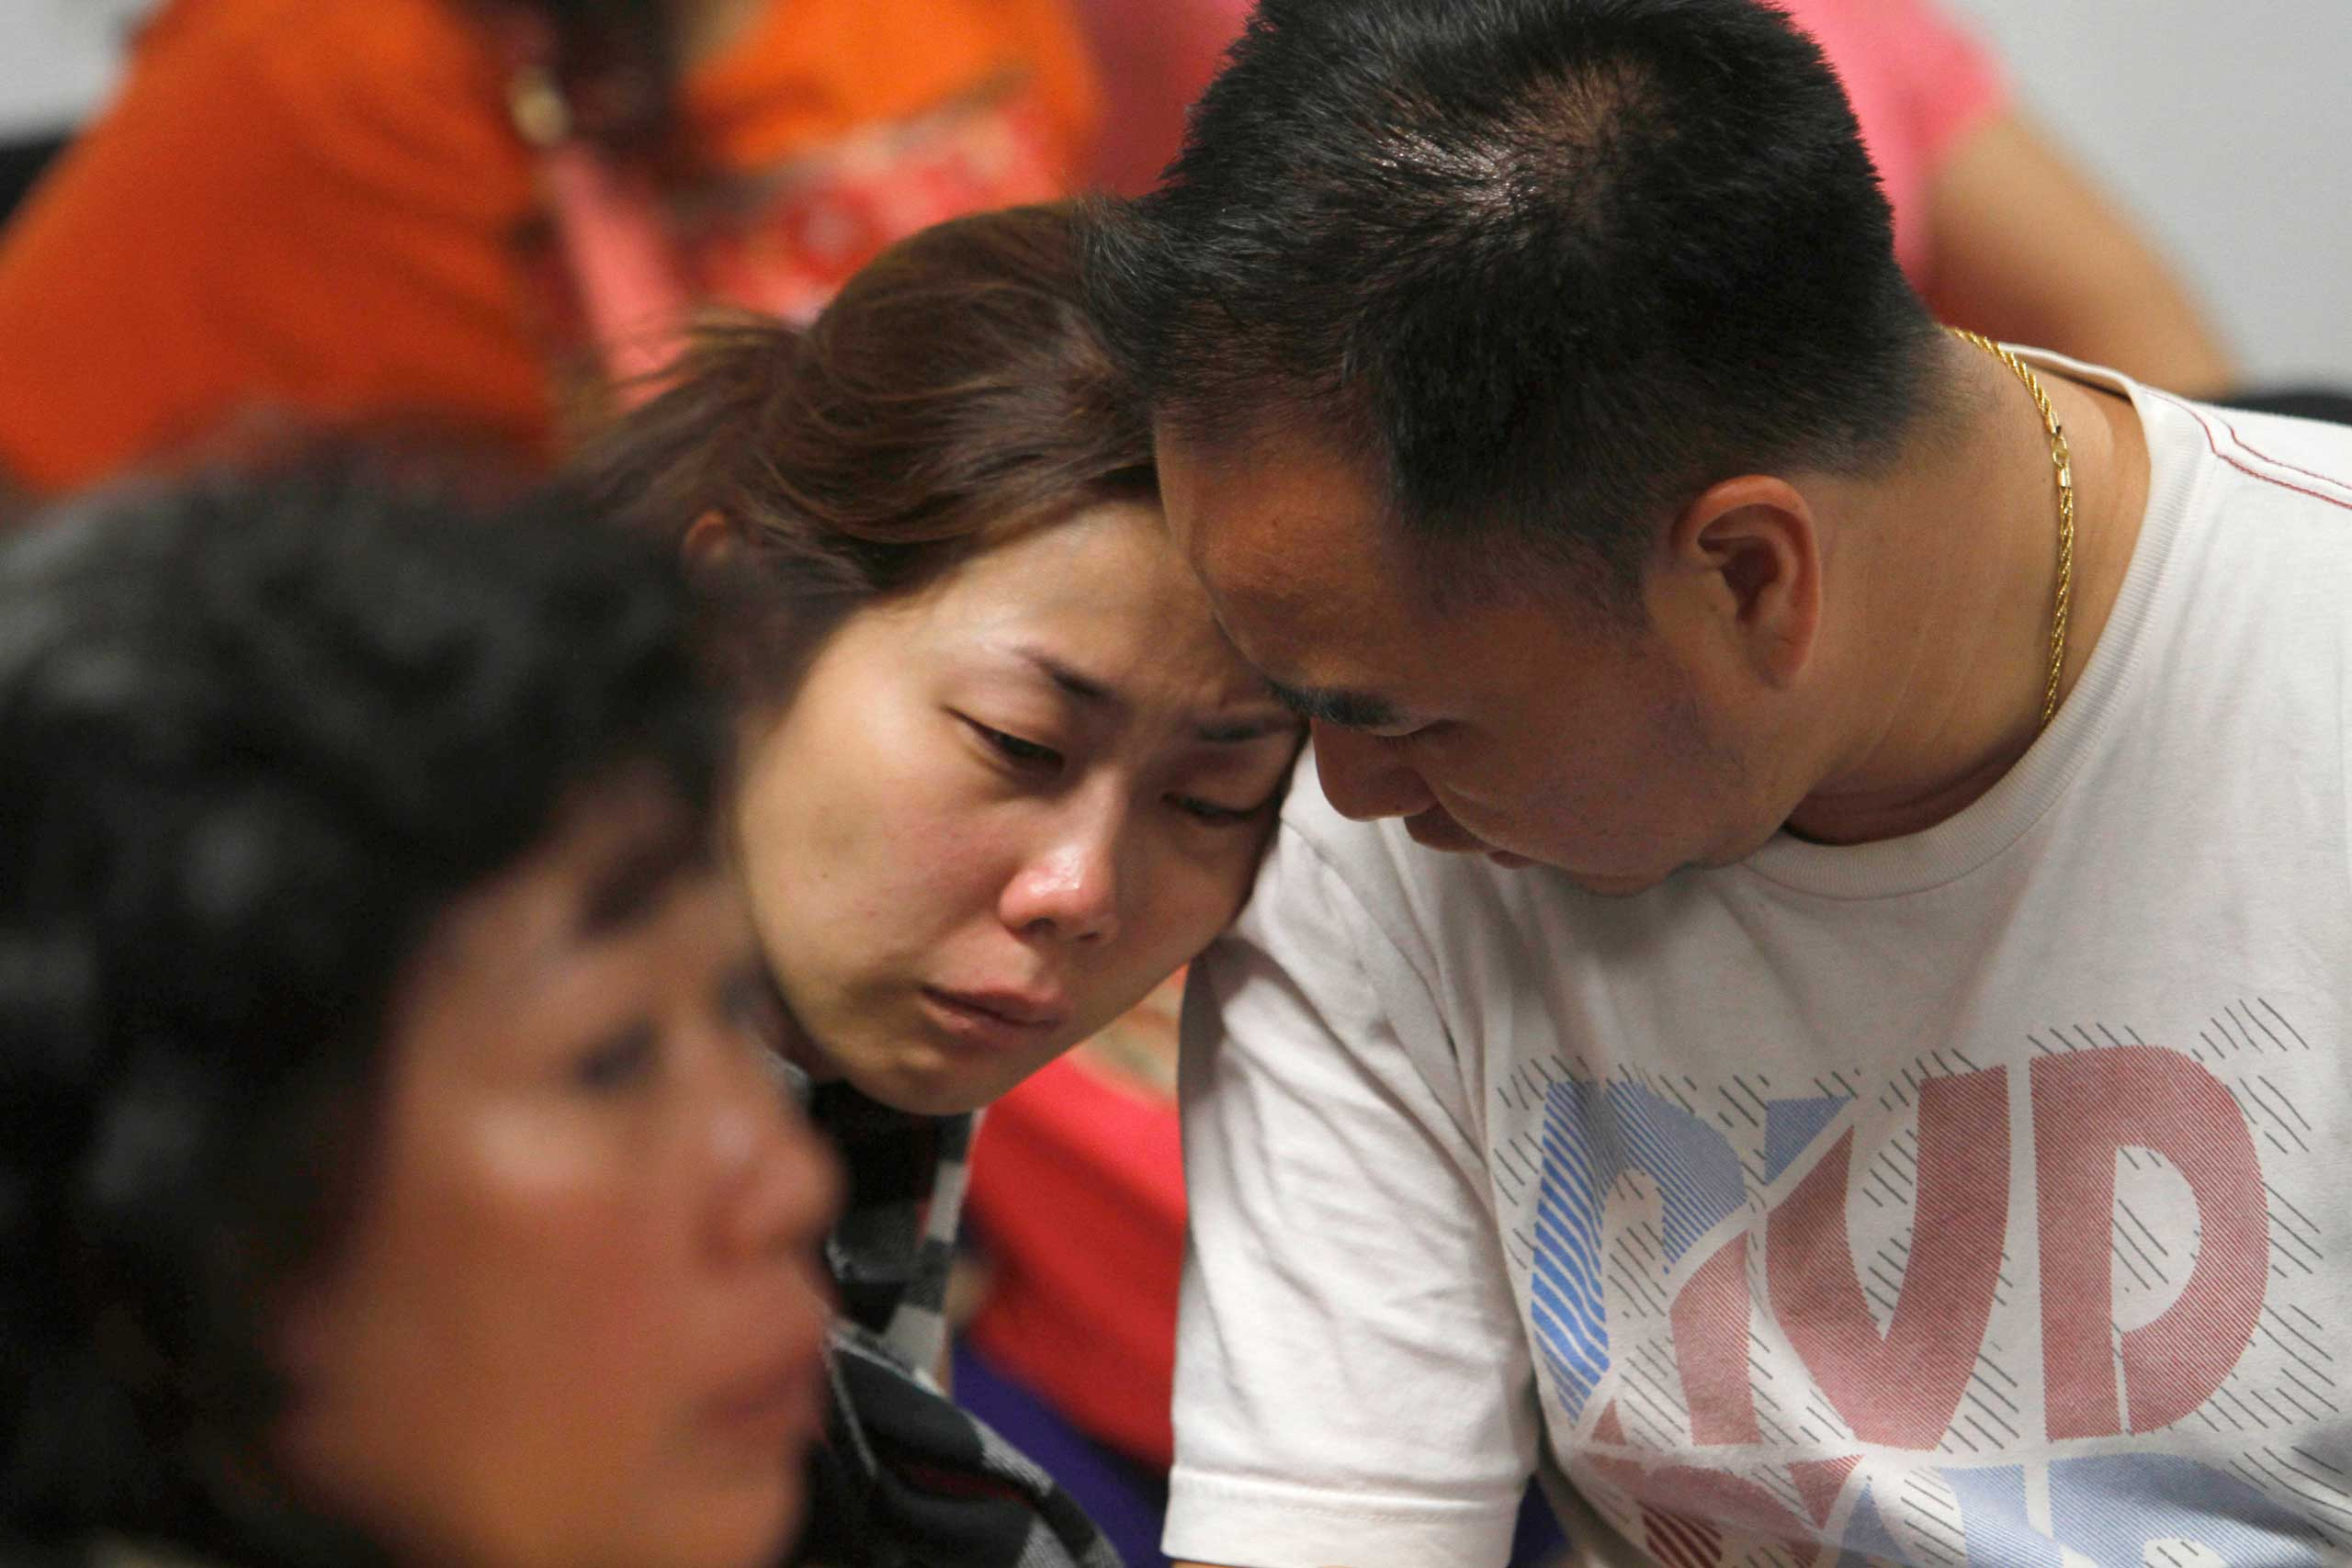 A relative of the passengers of AirAsia flight QZ8501 weeps as she waits for the latest news on the missing jetliner at a crisis center set up by local authority at Juanda International Airport in Surabaya, East Java, Indonesia, Dec. 28, 2014.